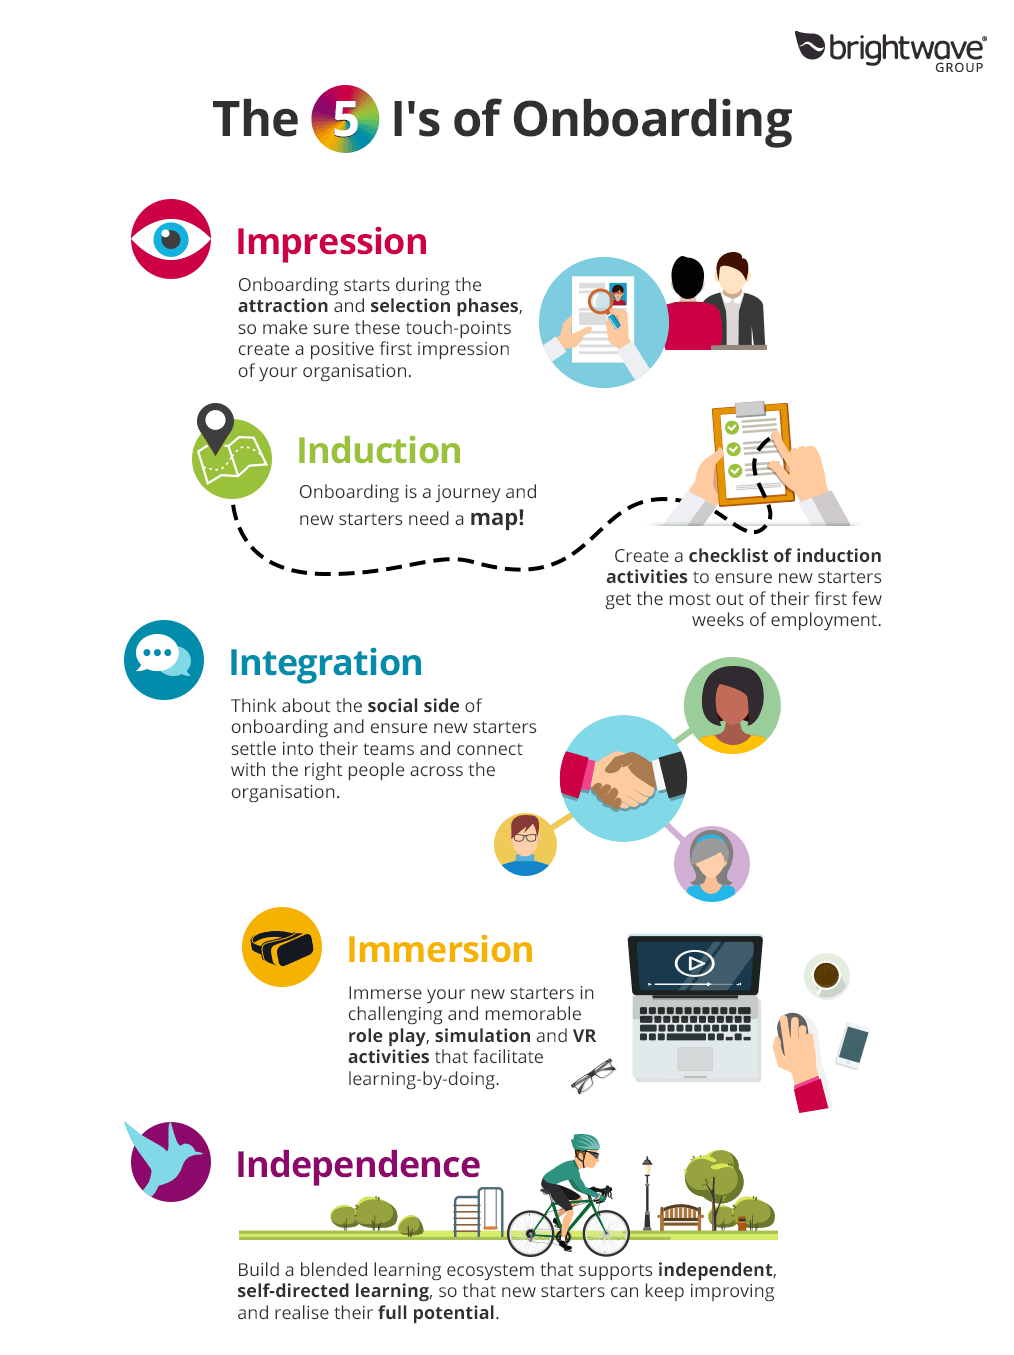 The 5 I's of Onboarding & Induction Infographic